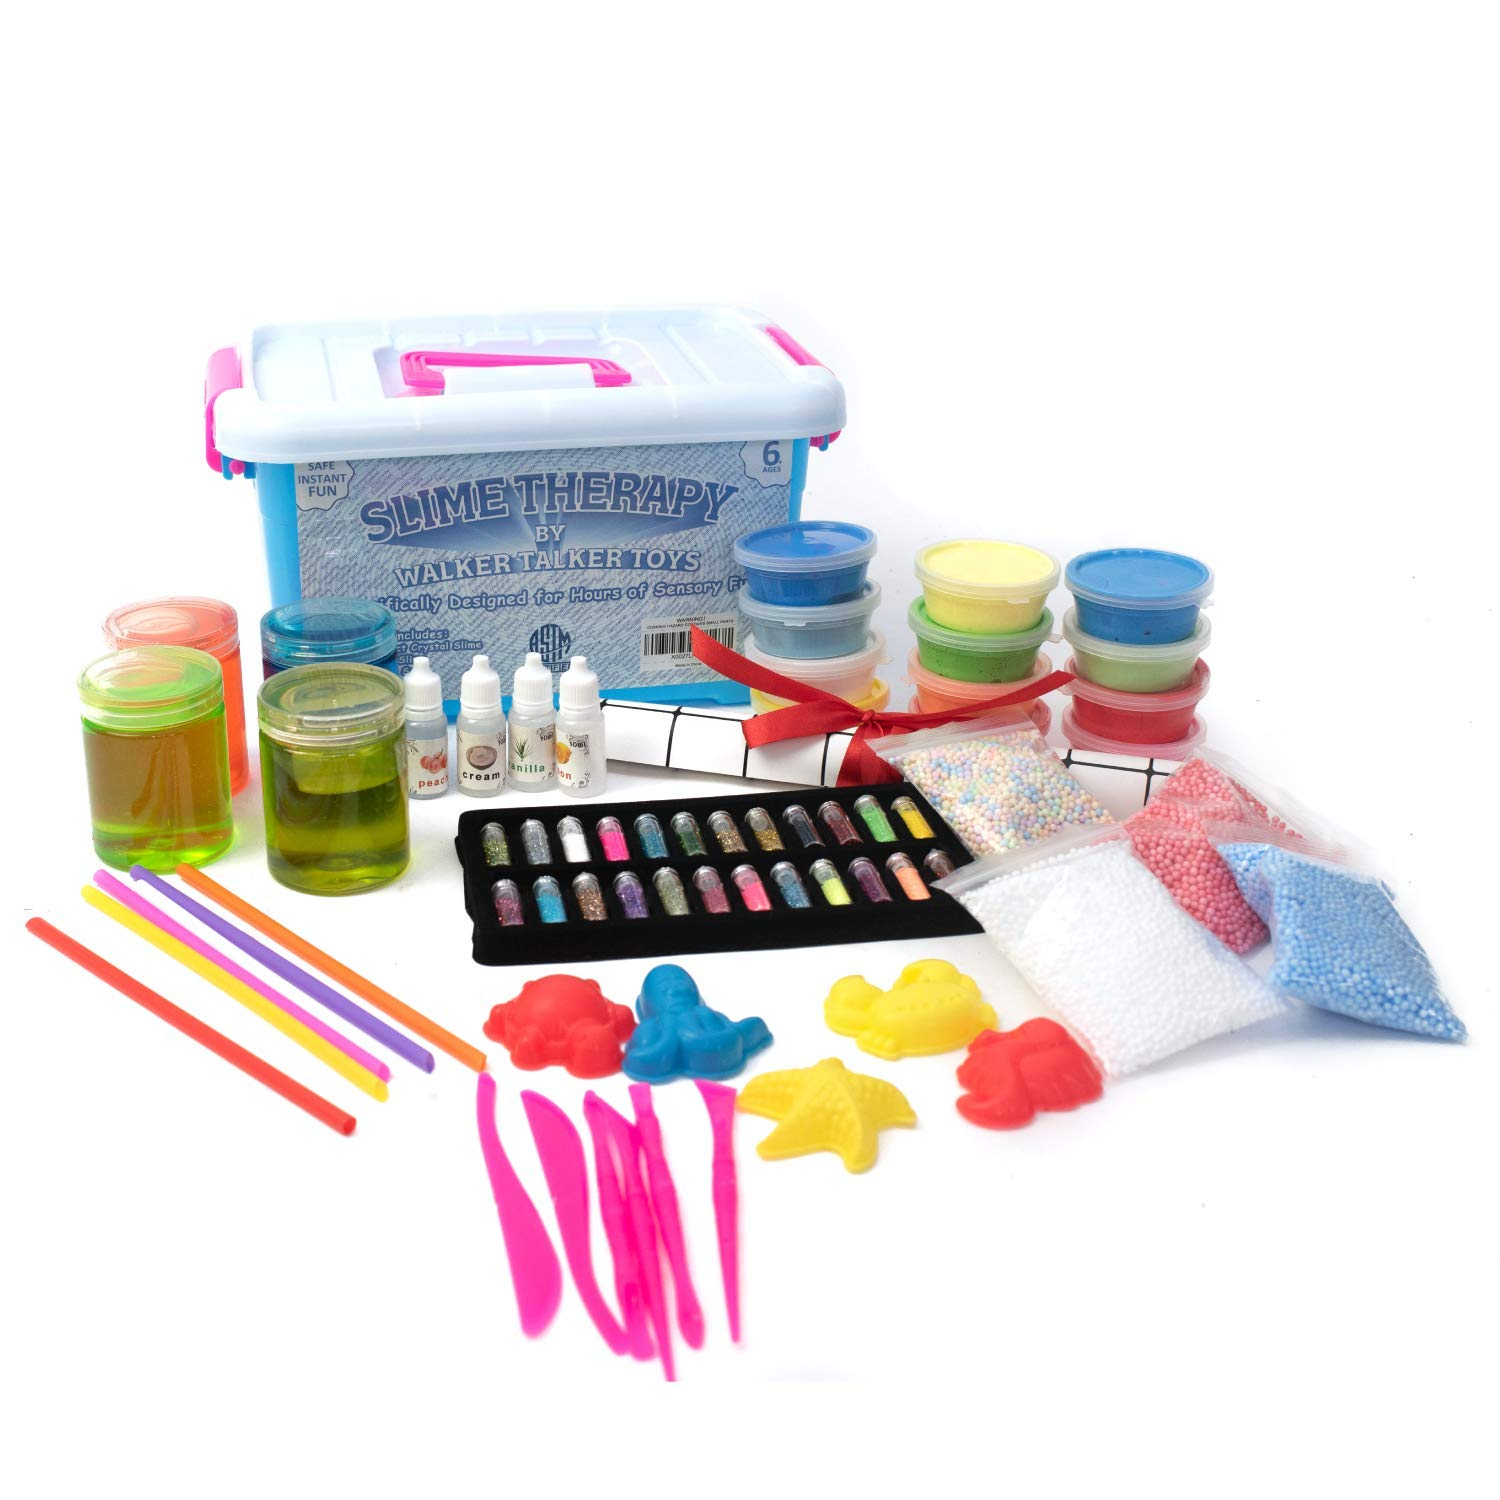 Slime Therapy Kit - Crystal Slime, Foam Slime, Magic Sand, Air Dry Clay, Accessories, Macaroon Foam Balls, Tool Sets, Glitters, Fragrances, Molds, Straws, Work Area Mat, Art Craft, Kids 6 and Older by Walker Talker Toys